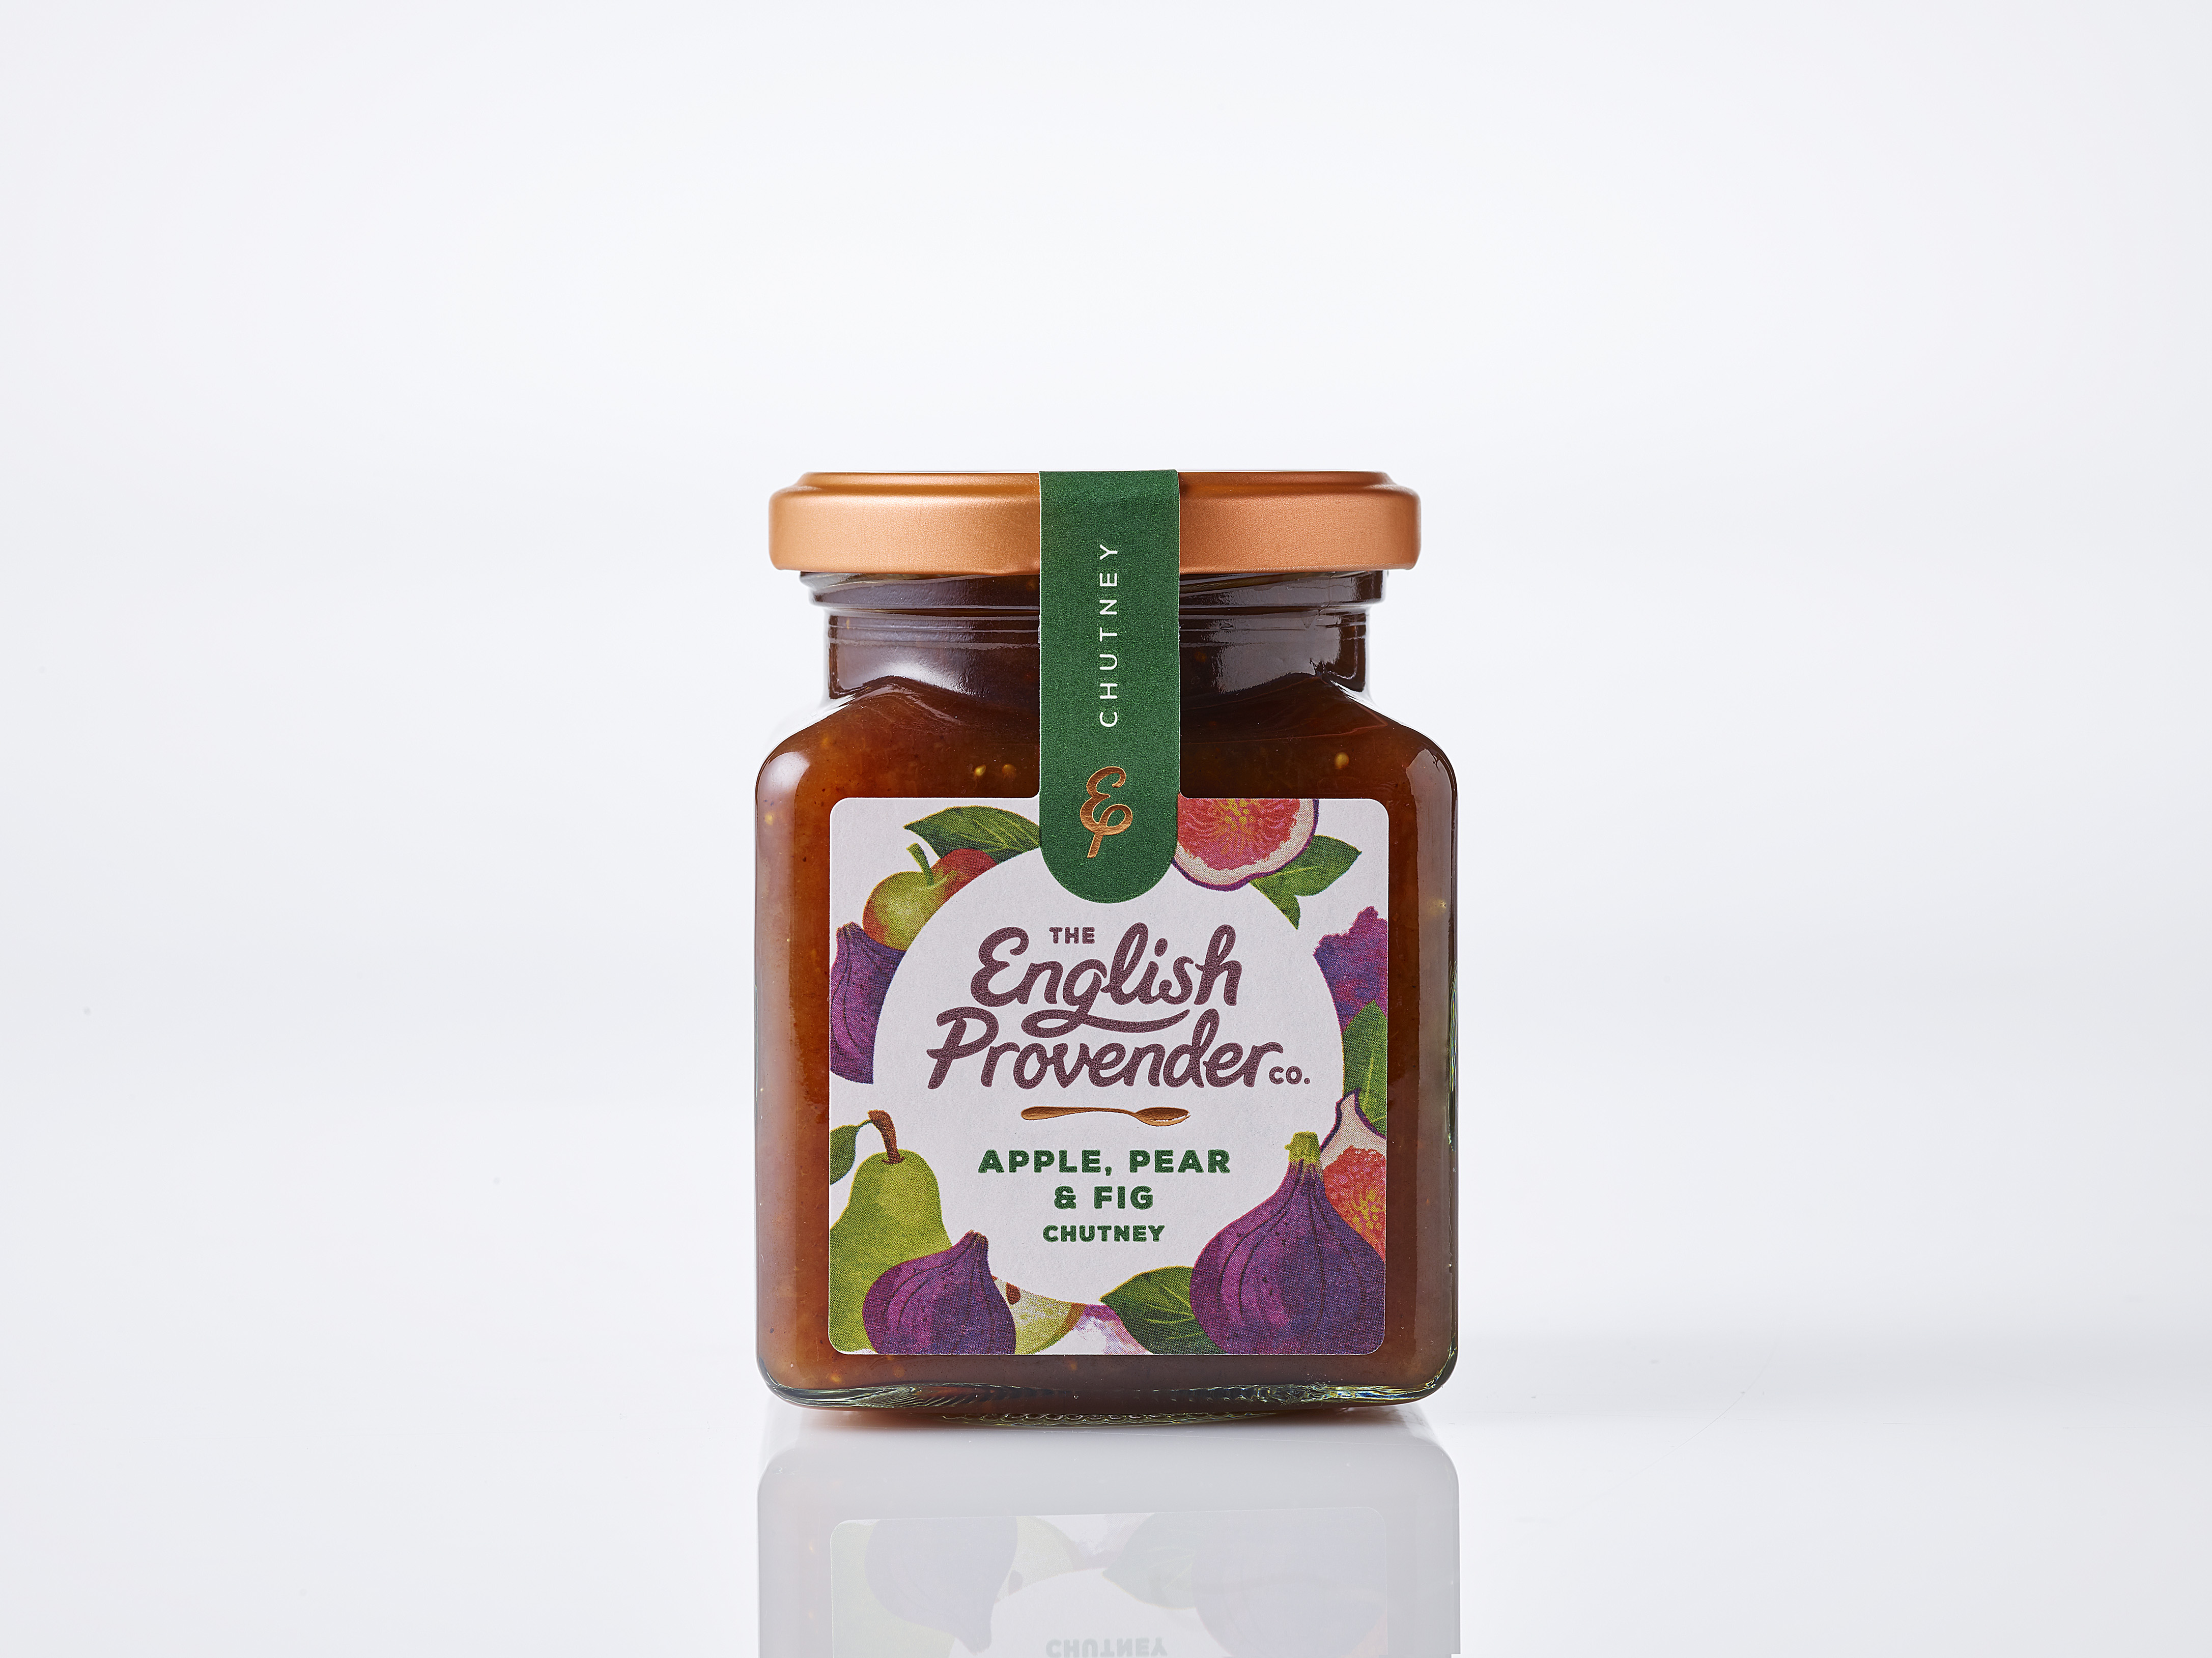 Apple, Pear & Fig Chutney